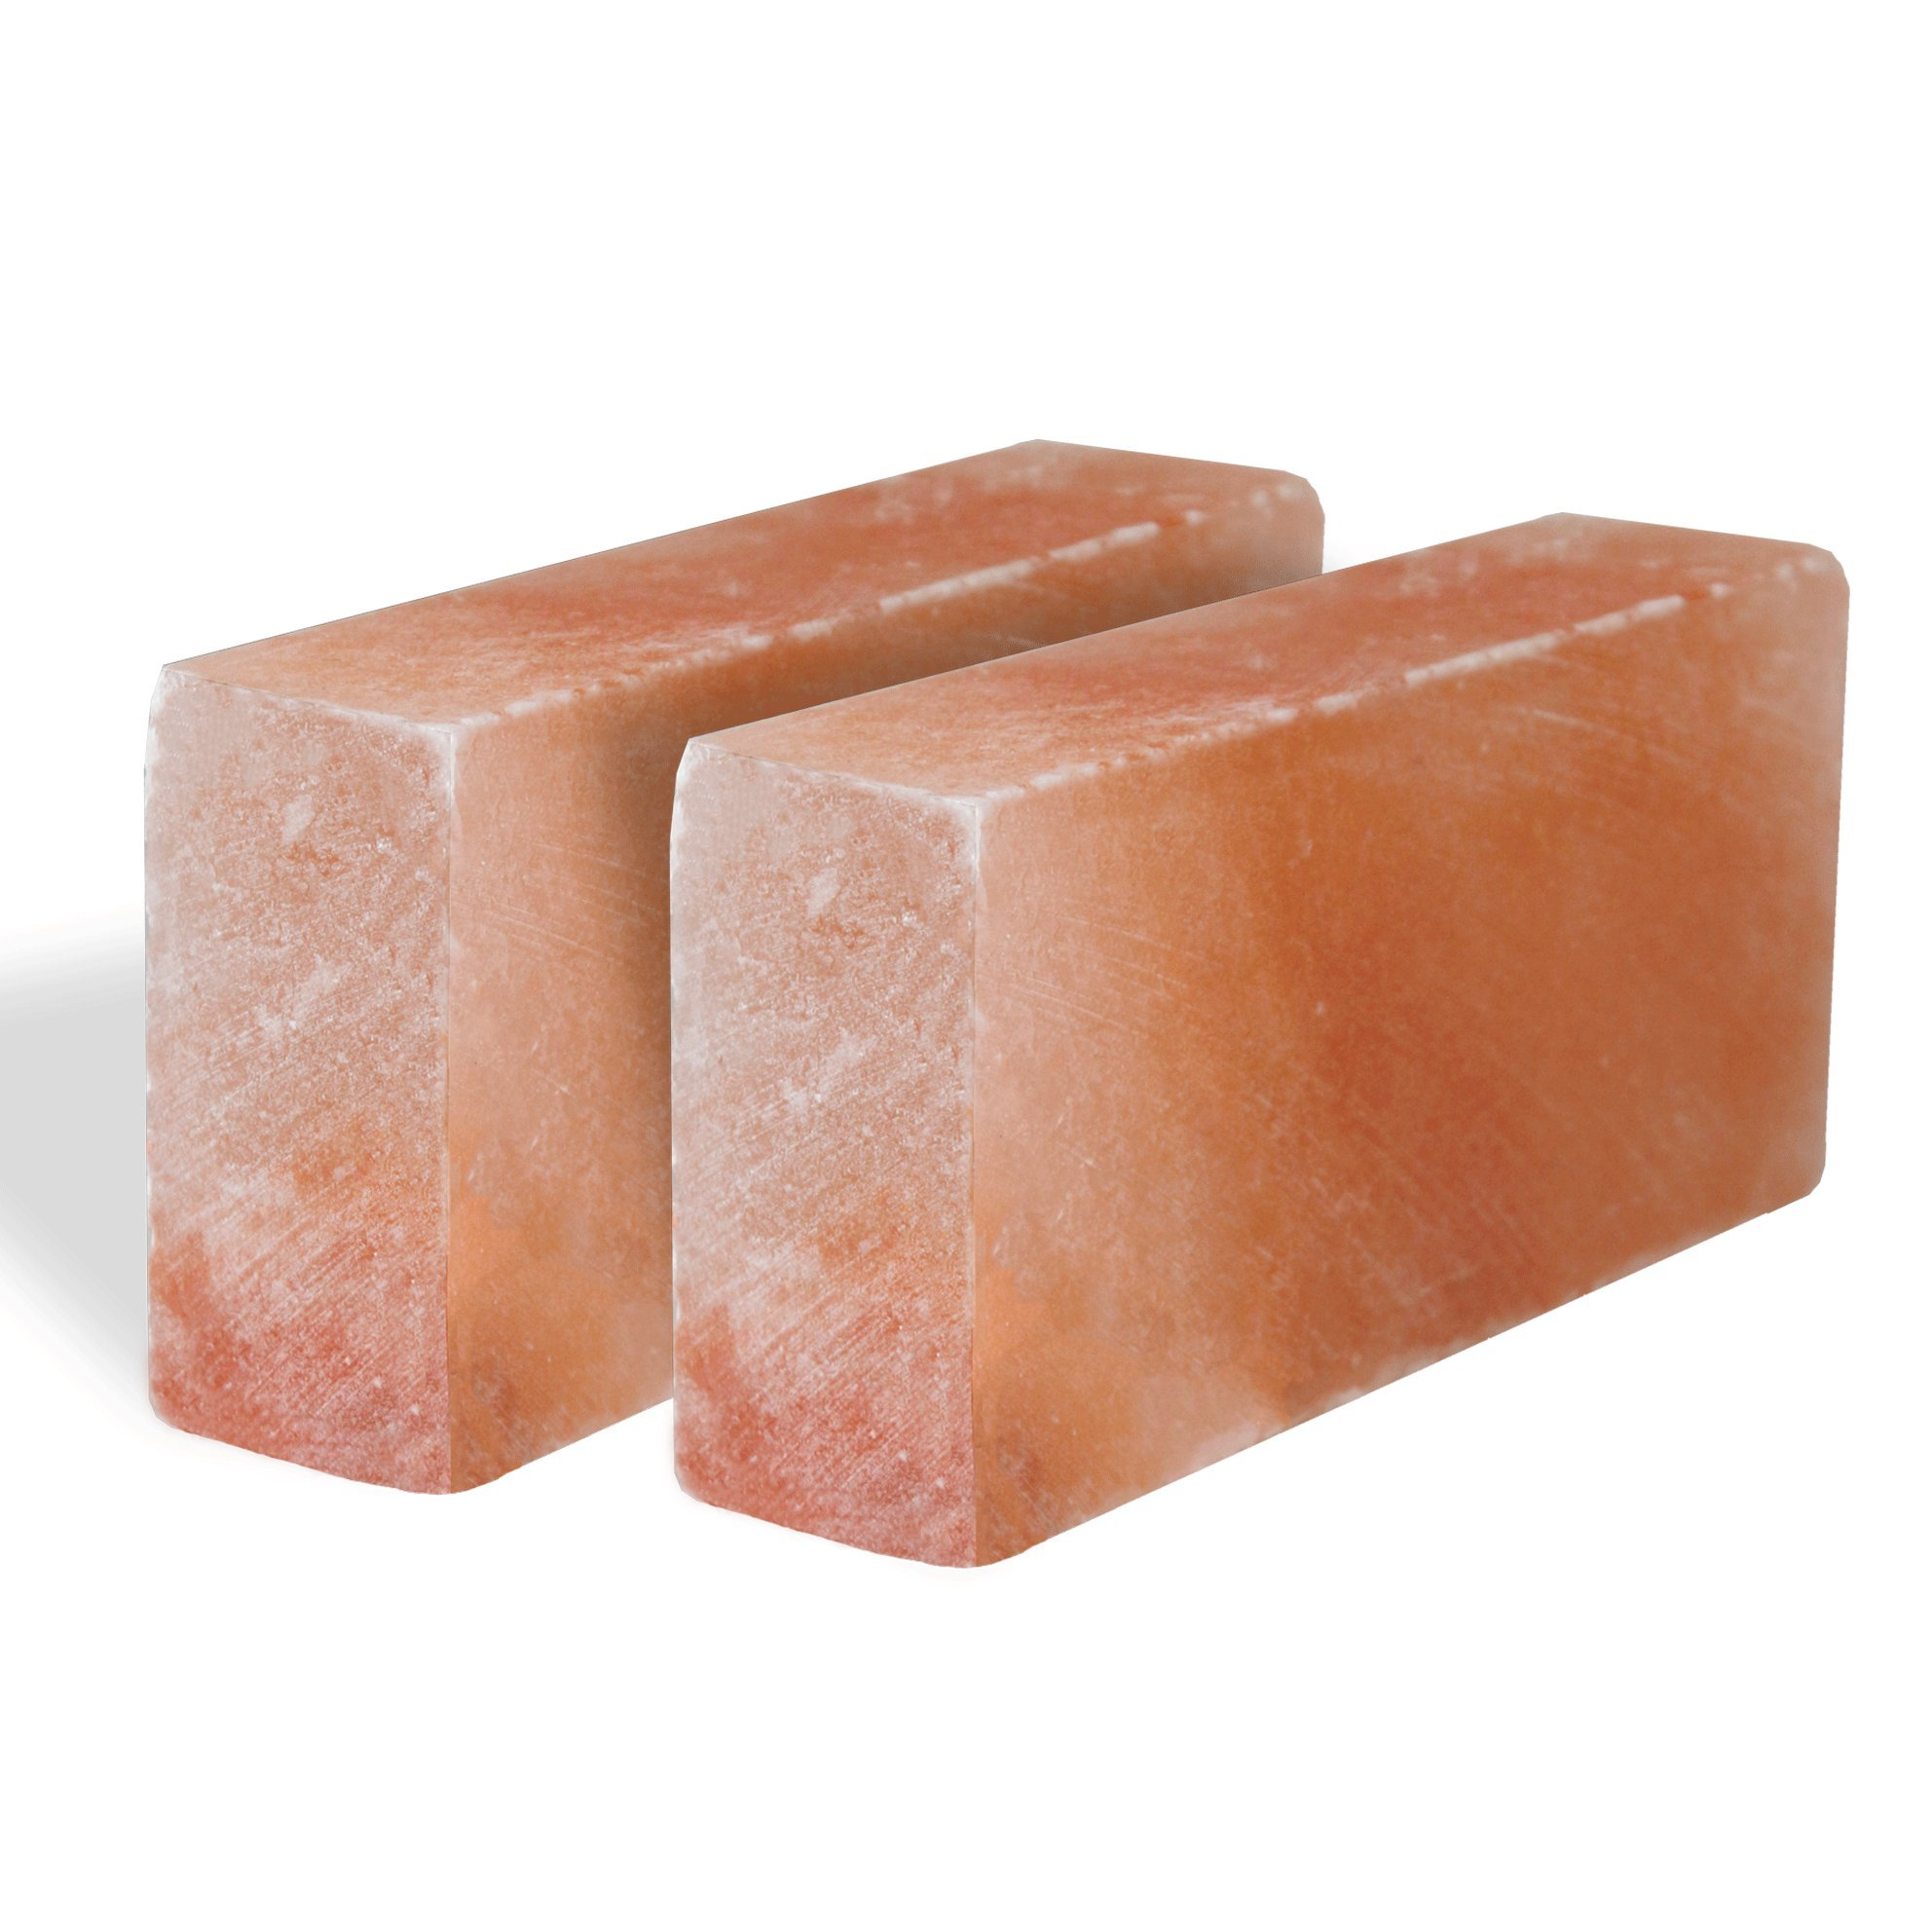 Pink Salt wall Himalayan Salt Brick Set of 20 Size 8''x4''x2'' Crystal Rock Slab Tiles for Home Decor by Pink Salt wall (Image #1)